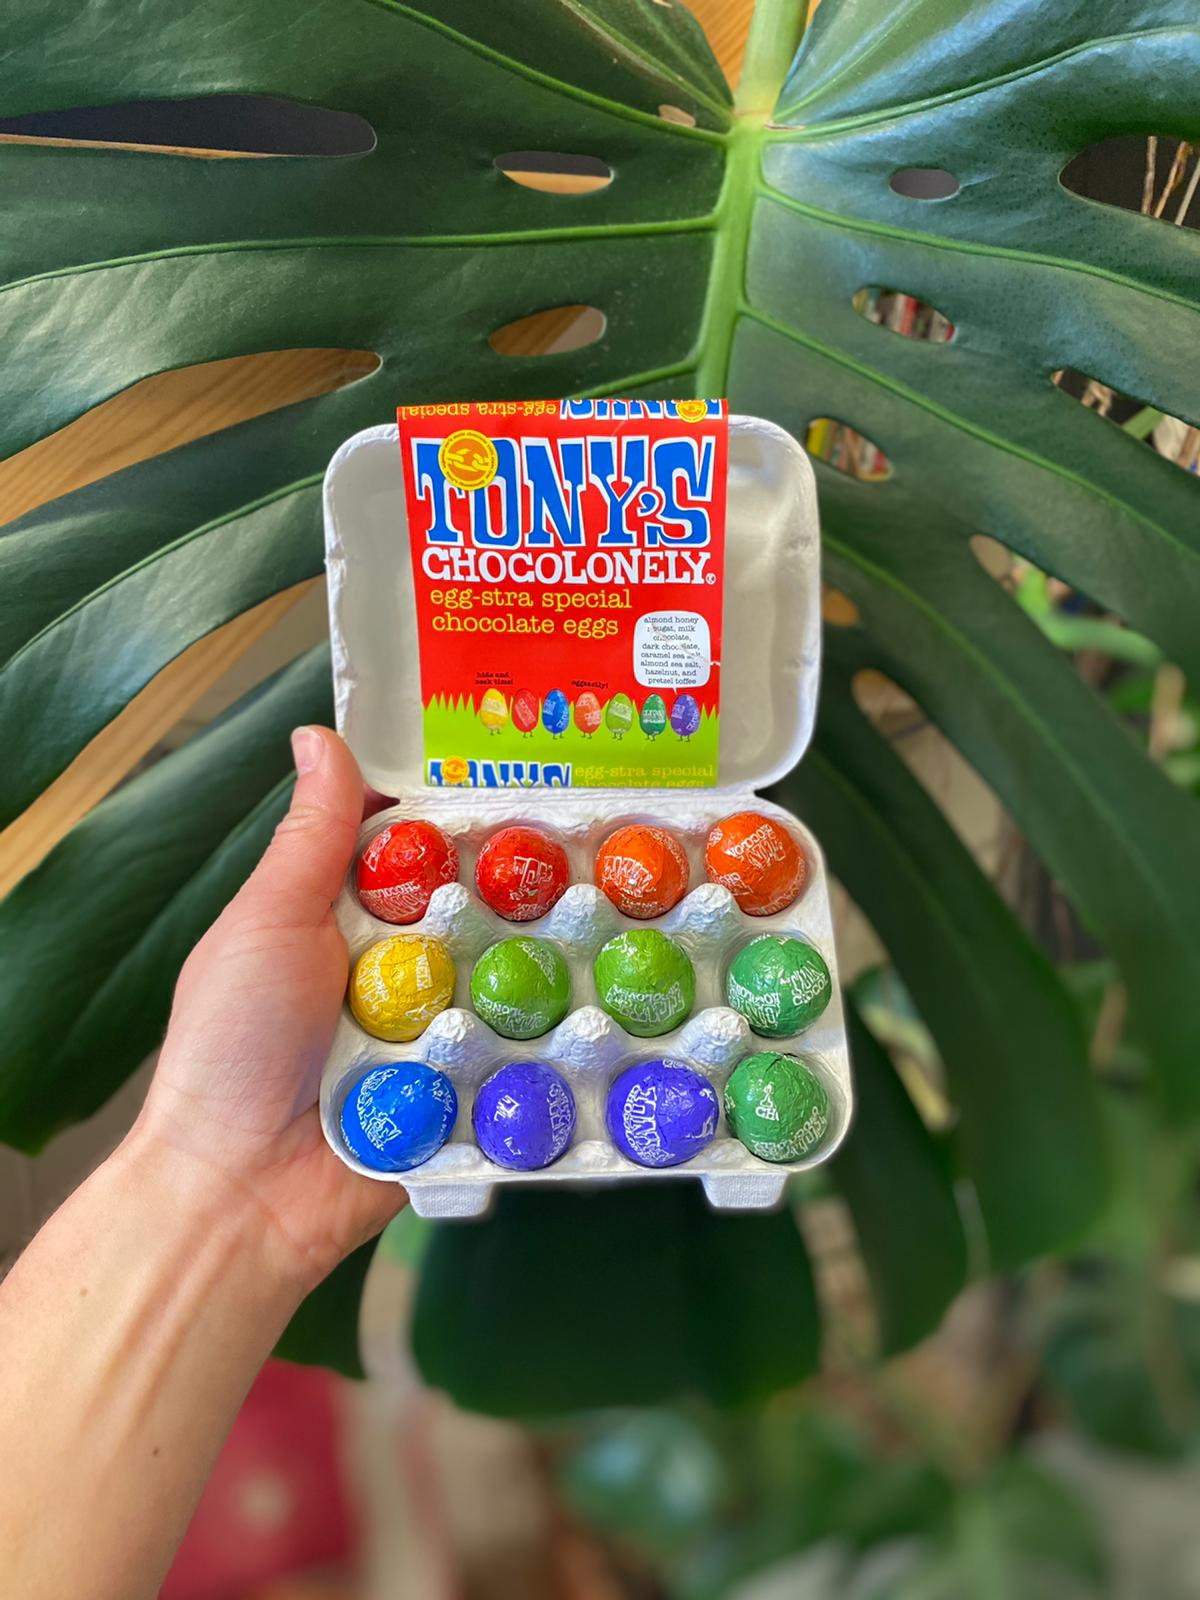 Egg-Stra Special Chocolate Eggs | Tony's Chocolonely